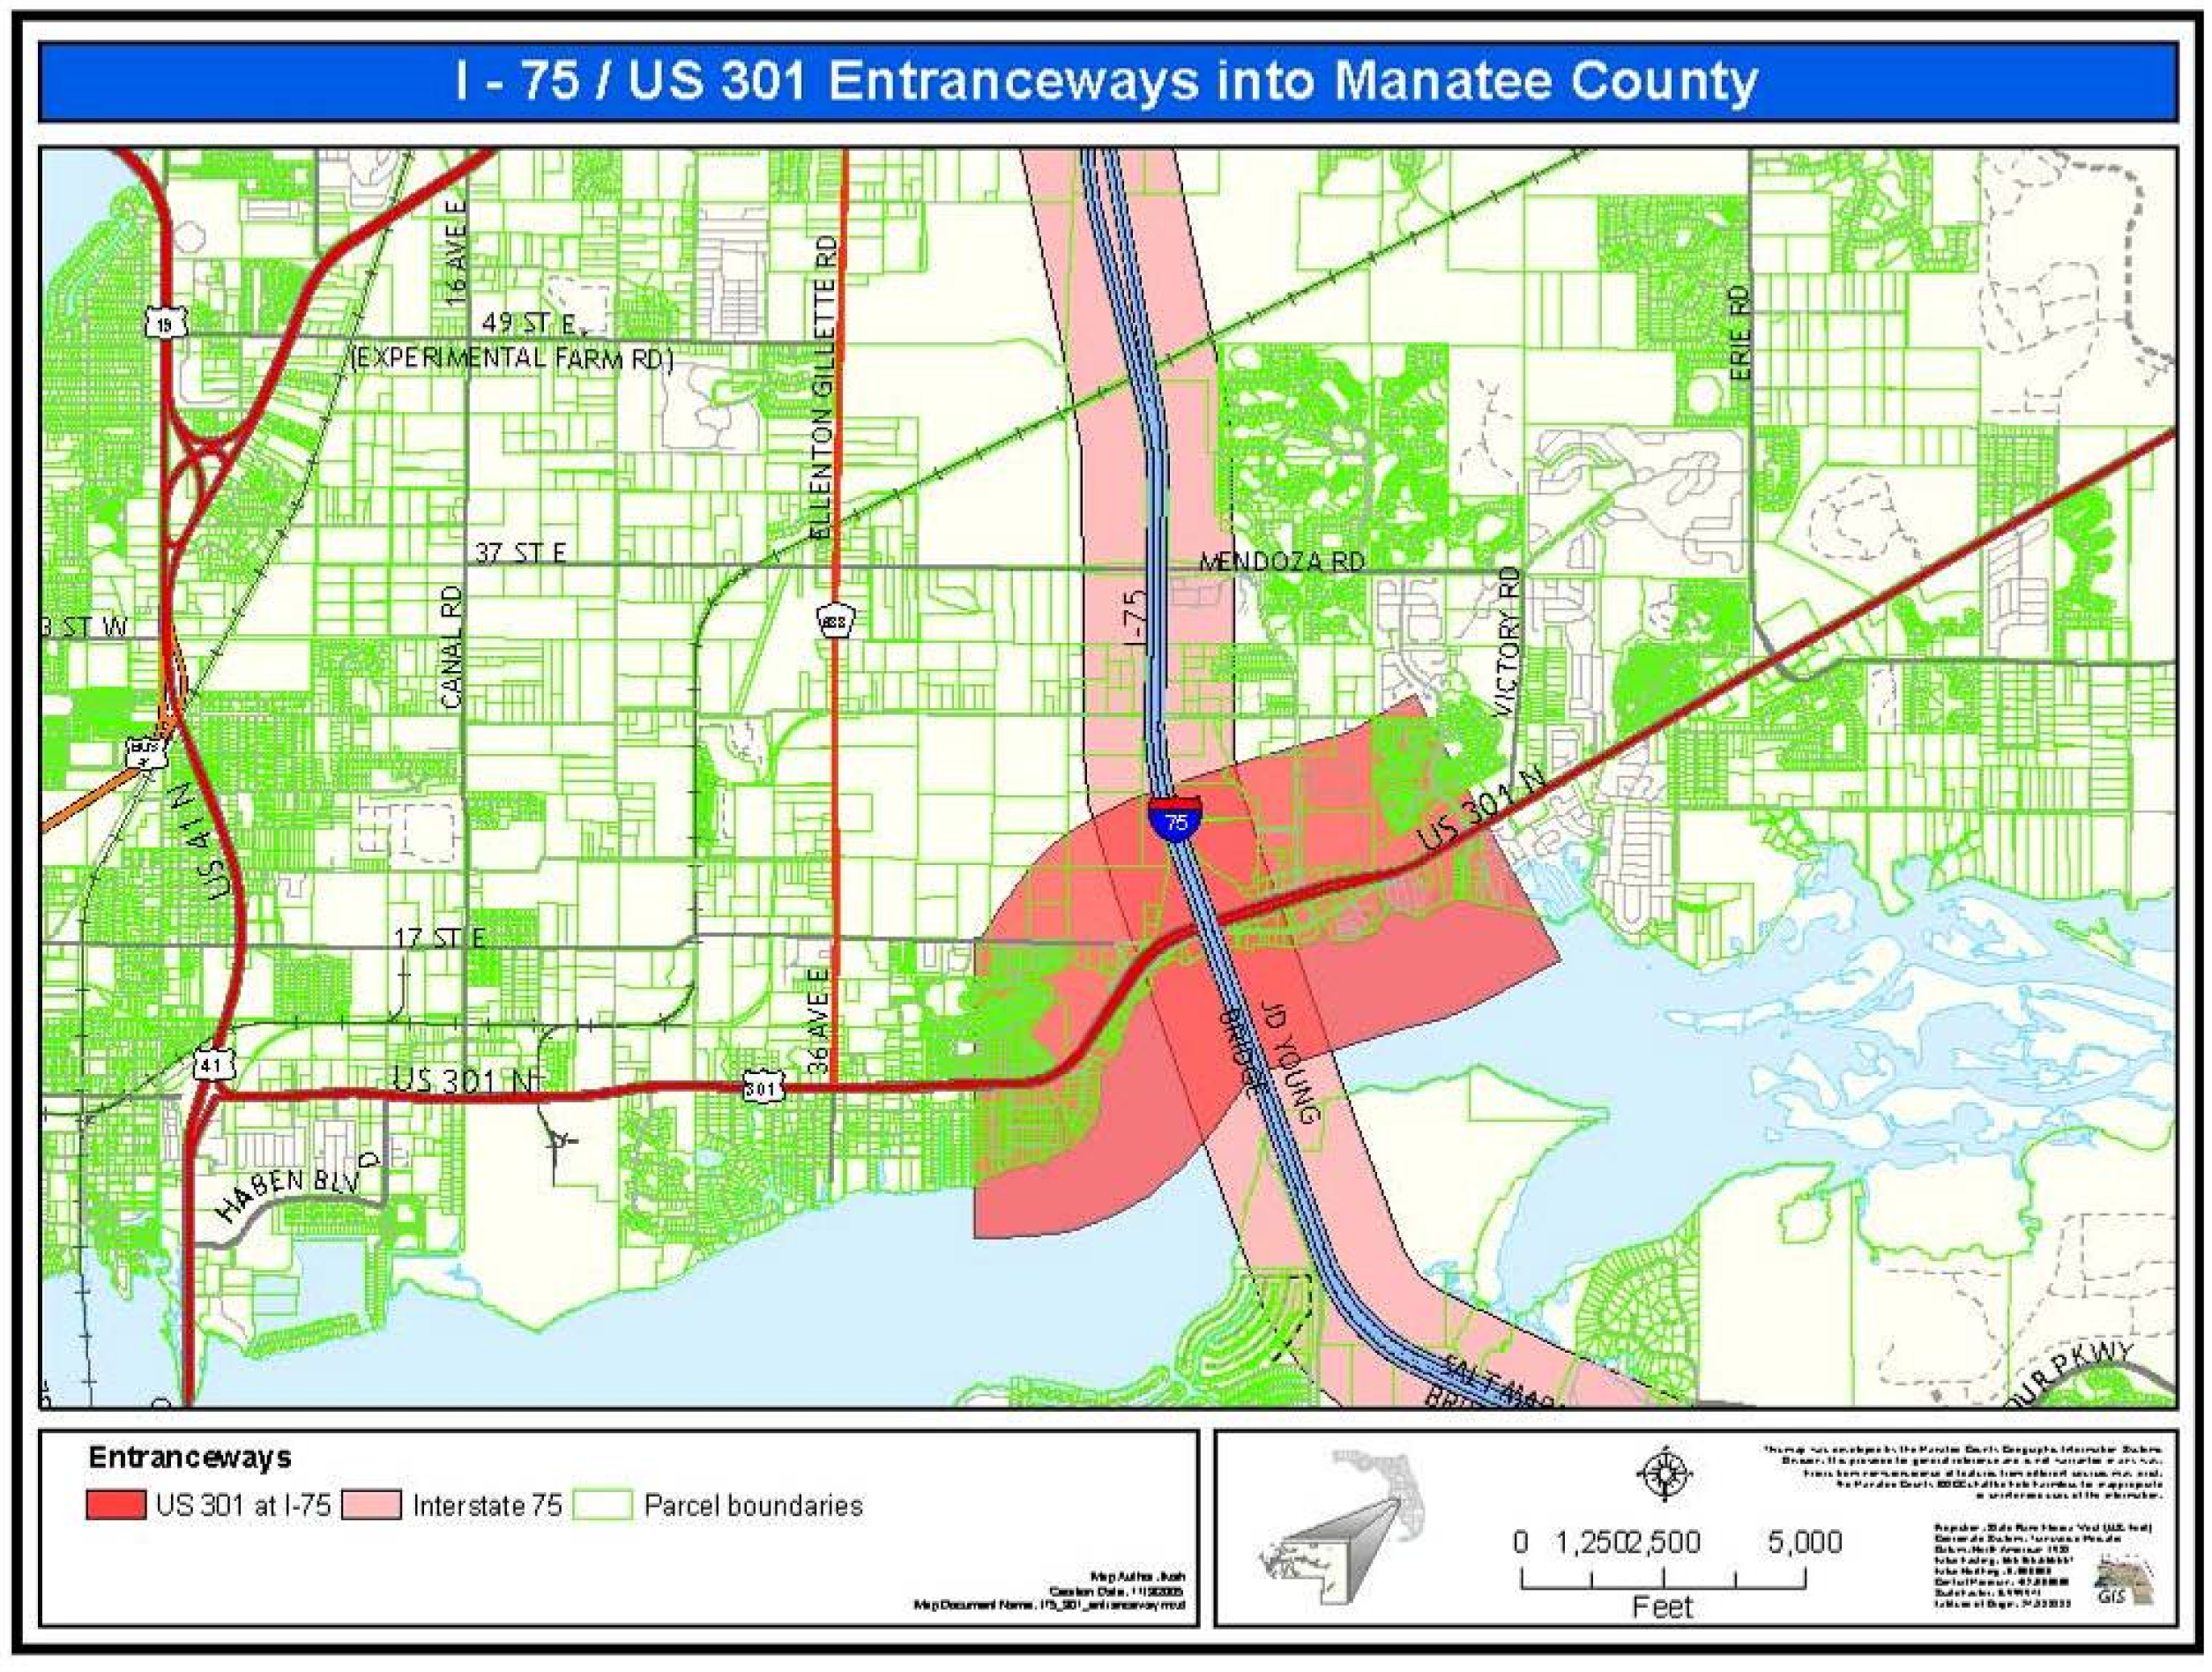 Chapter 9 - DESIGN GUIDELINES AND STANDARDS   Land ... on sarasota florida hurricane tracking map, manatee county evacuation zones, manatee county government, manatee county hurricane evacuation map, rosicrucian safe zone map, manatee county 911, pinellas county flood map, manatee county road map, manatee county school zones, streets of cape coral map, manatee county school map, manatee county zip code areas, zone by zip code map, manatee county florida, tampa bay area zip code map, pinellas county florida zip code map, manatee county property map, manatee county zoning map, manatee county gis, manatee county interactive map,